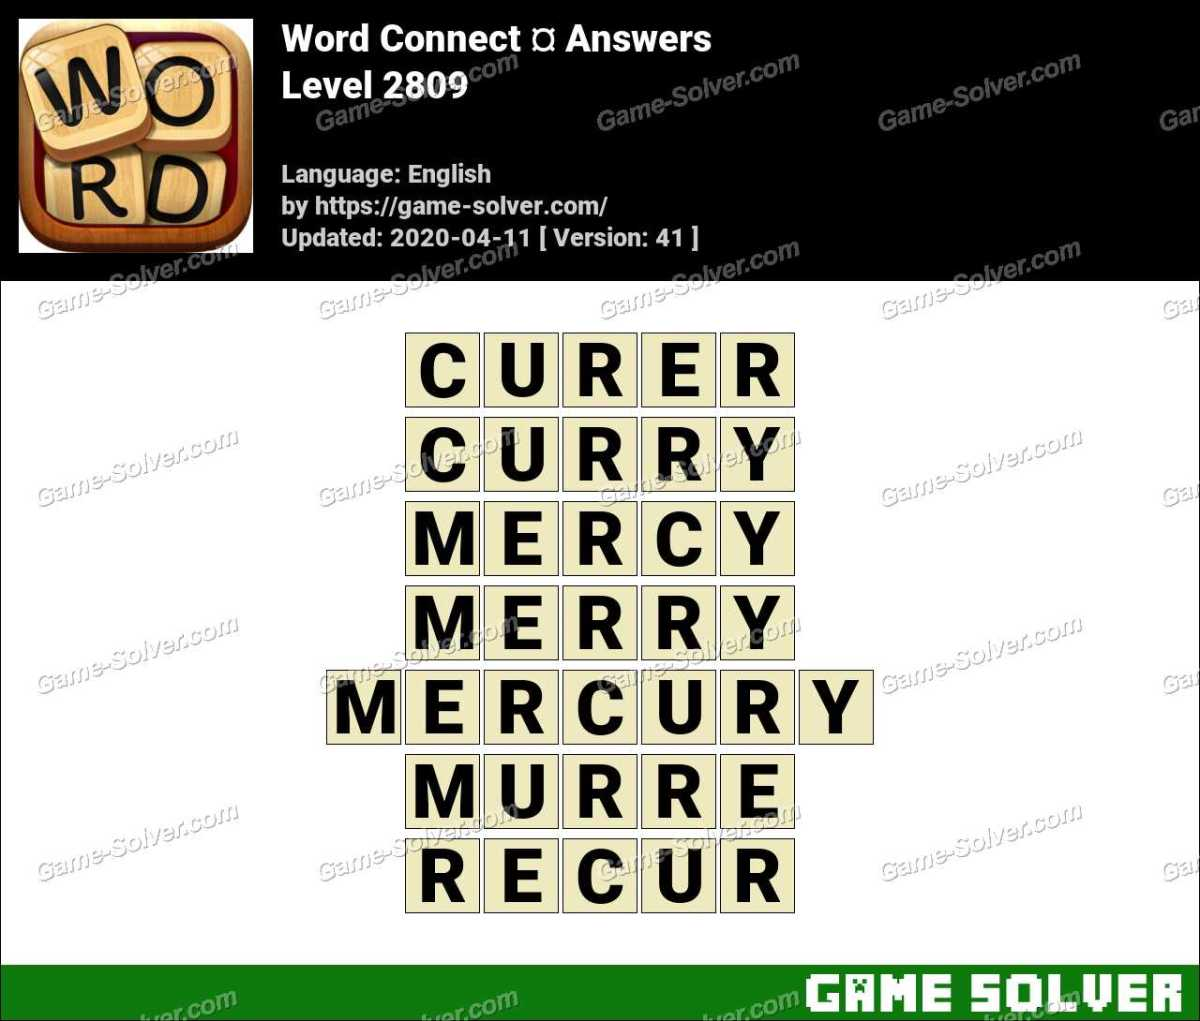 Word Connect Level 2809 Answers